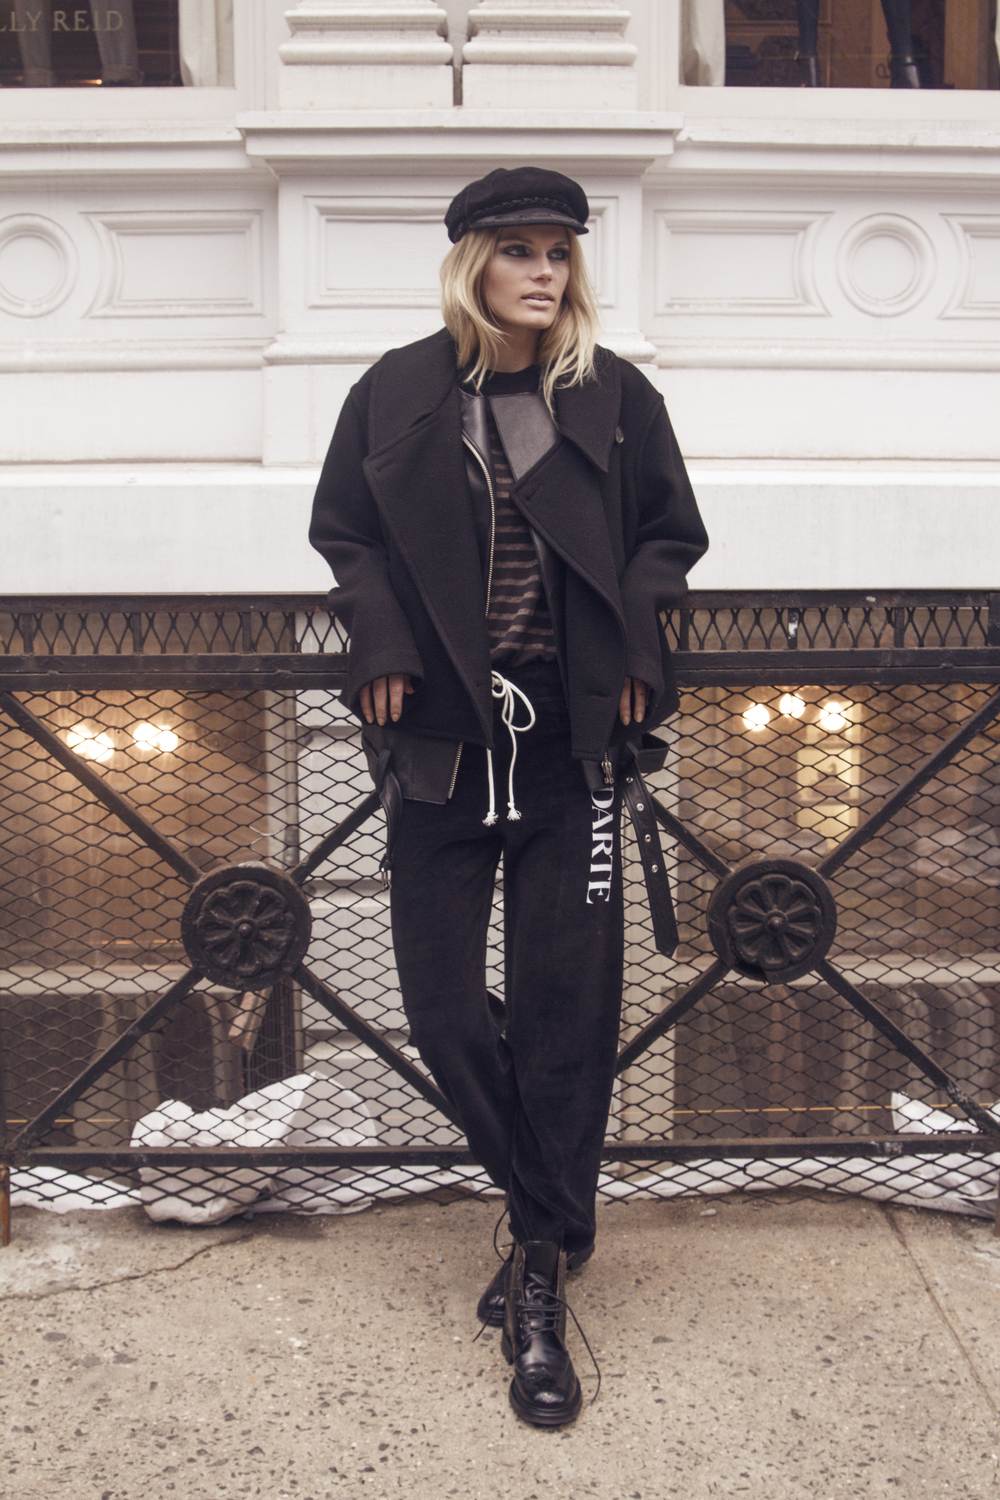 SWEATPANT RODARTE 200 | JACKET LEMAIRE 1040 | LEATHER VEST IRO TEE RAQUEL ALLEGRA 175 | HAT STYLIST'S OWN